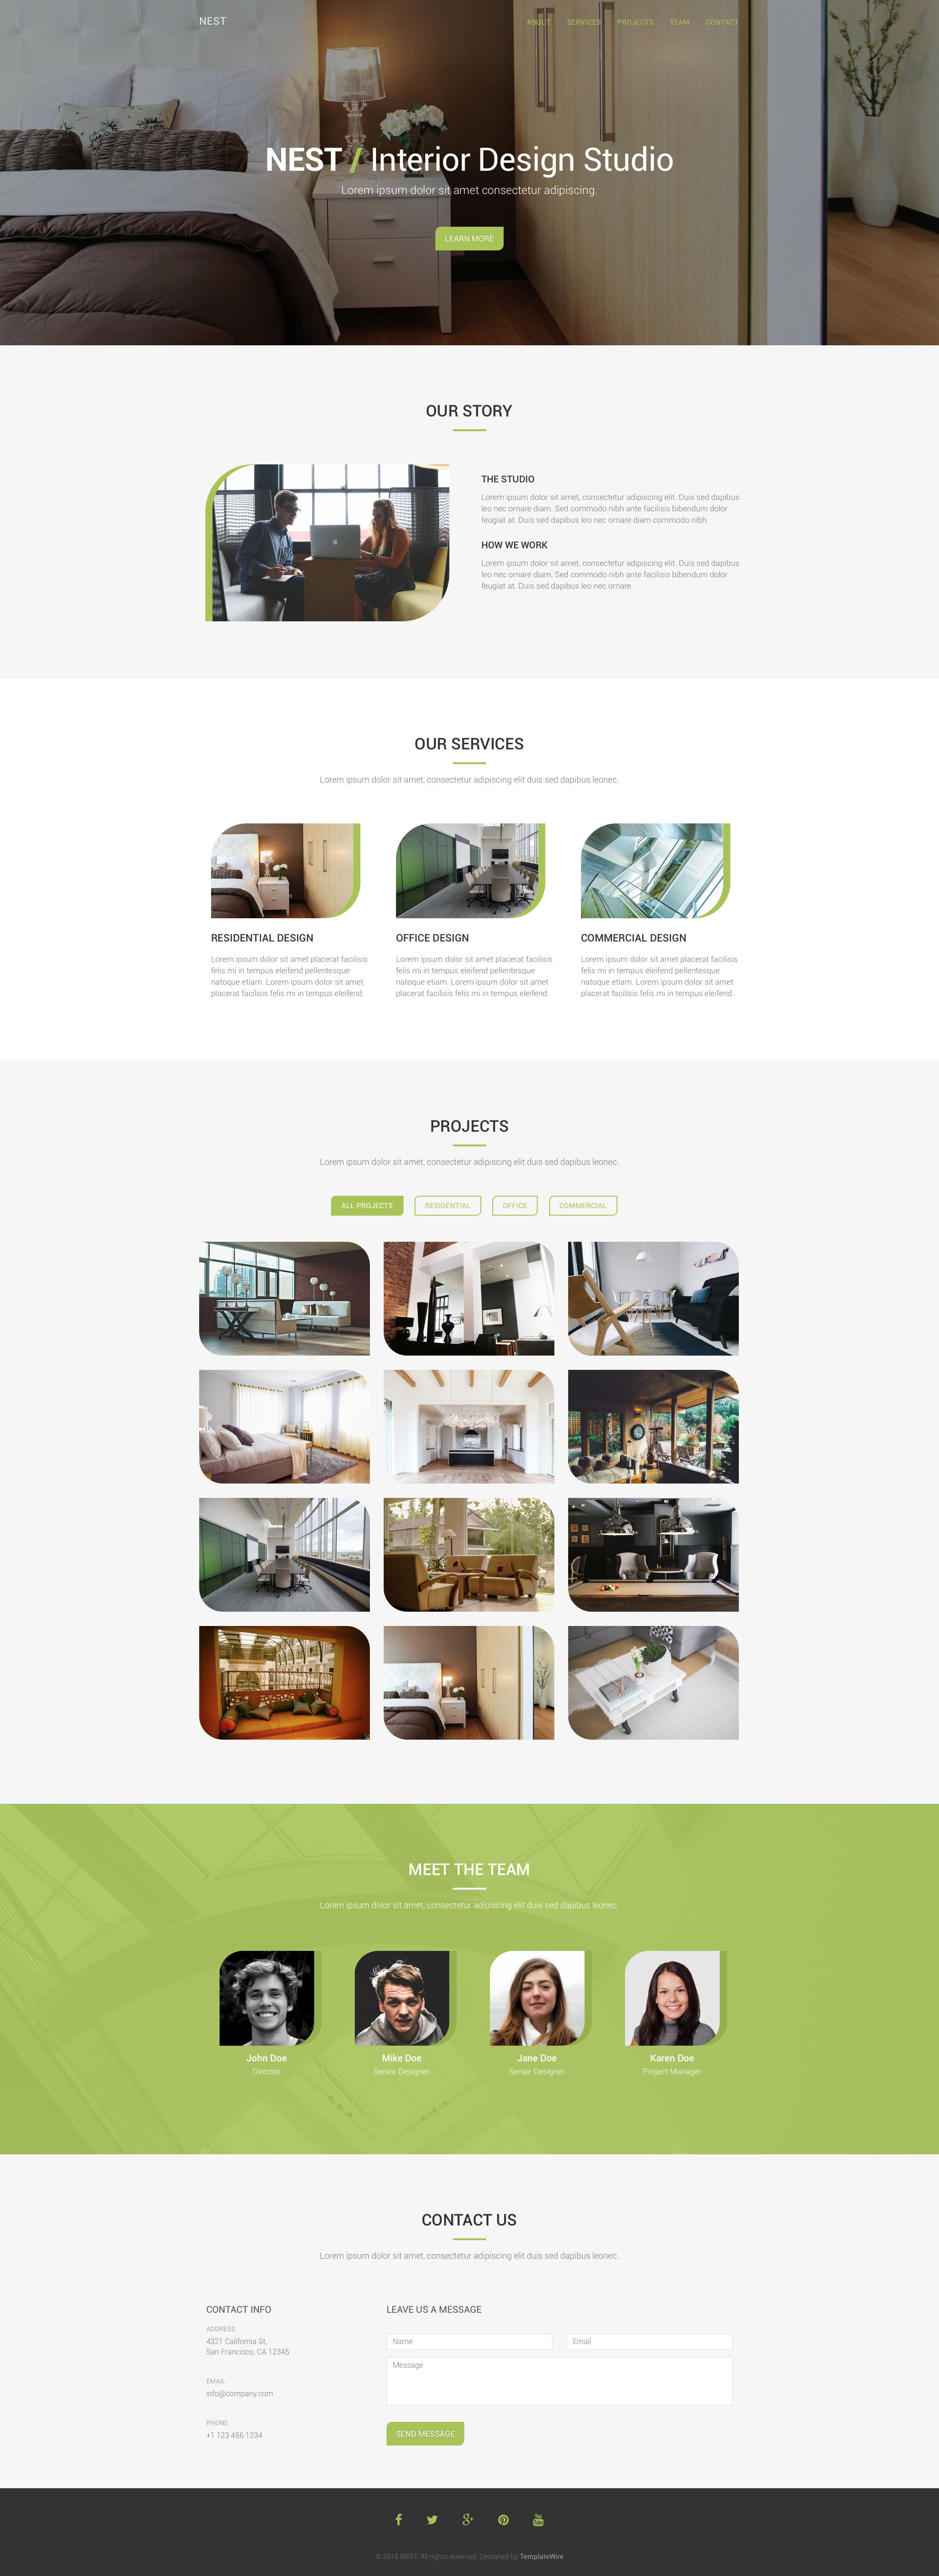 Nest is a free HTML5 Bootstrap one page interior design HTML5 website template. Nest HTML template contains 5 sections: About, Services, Projects, Team and Contact. Nest free HTML template is fully responsive, retina ready and comes with the popular Bootstrap CSS Grid System.